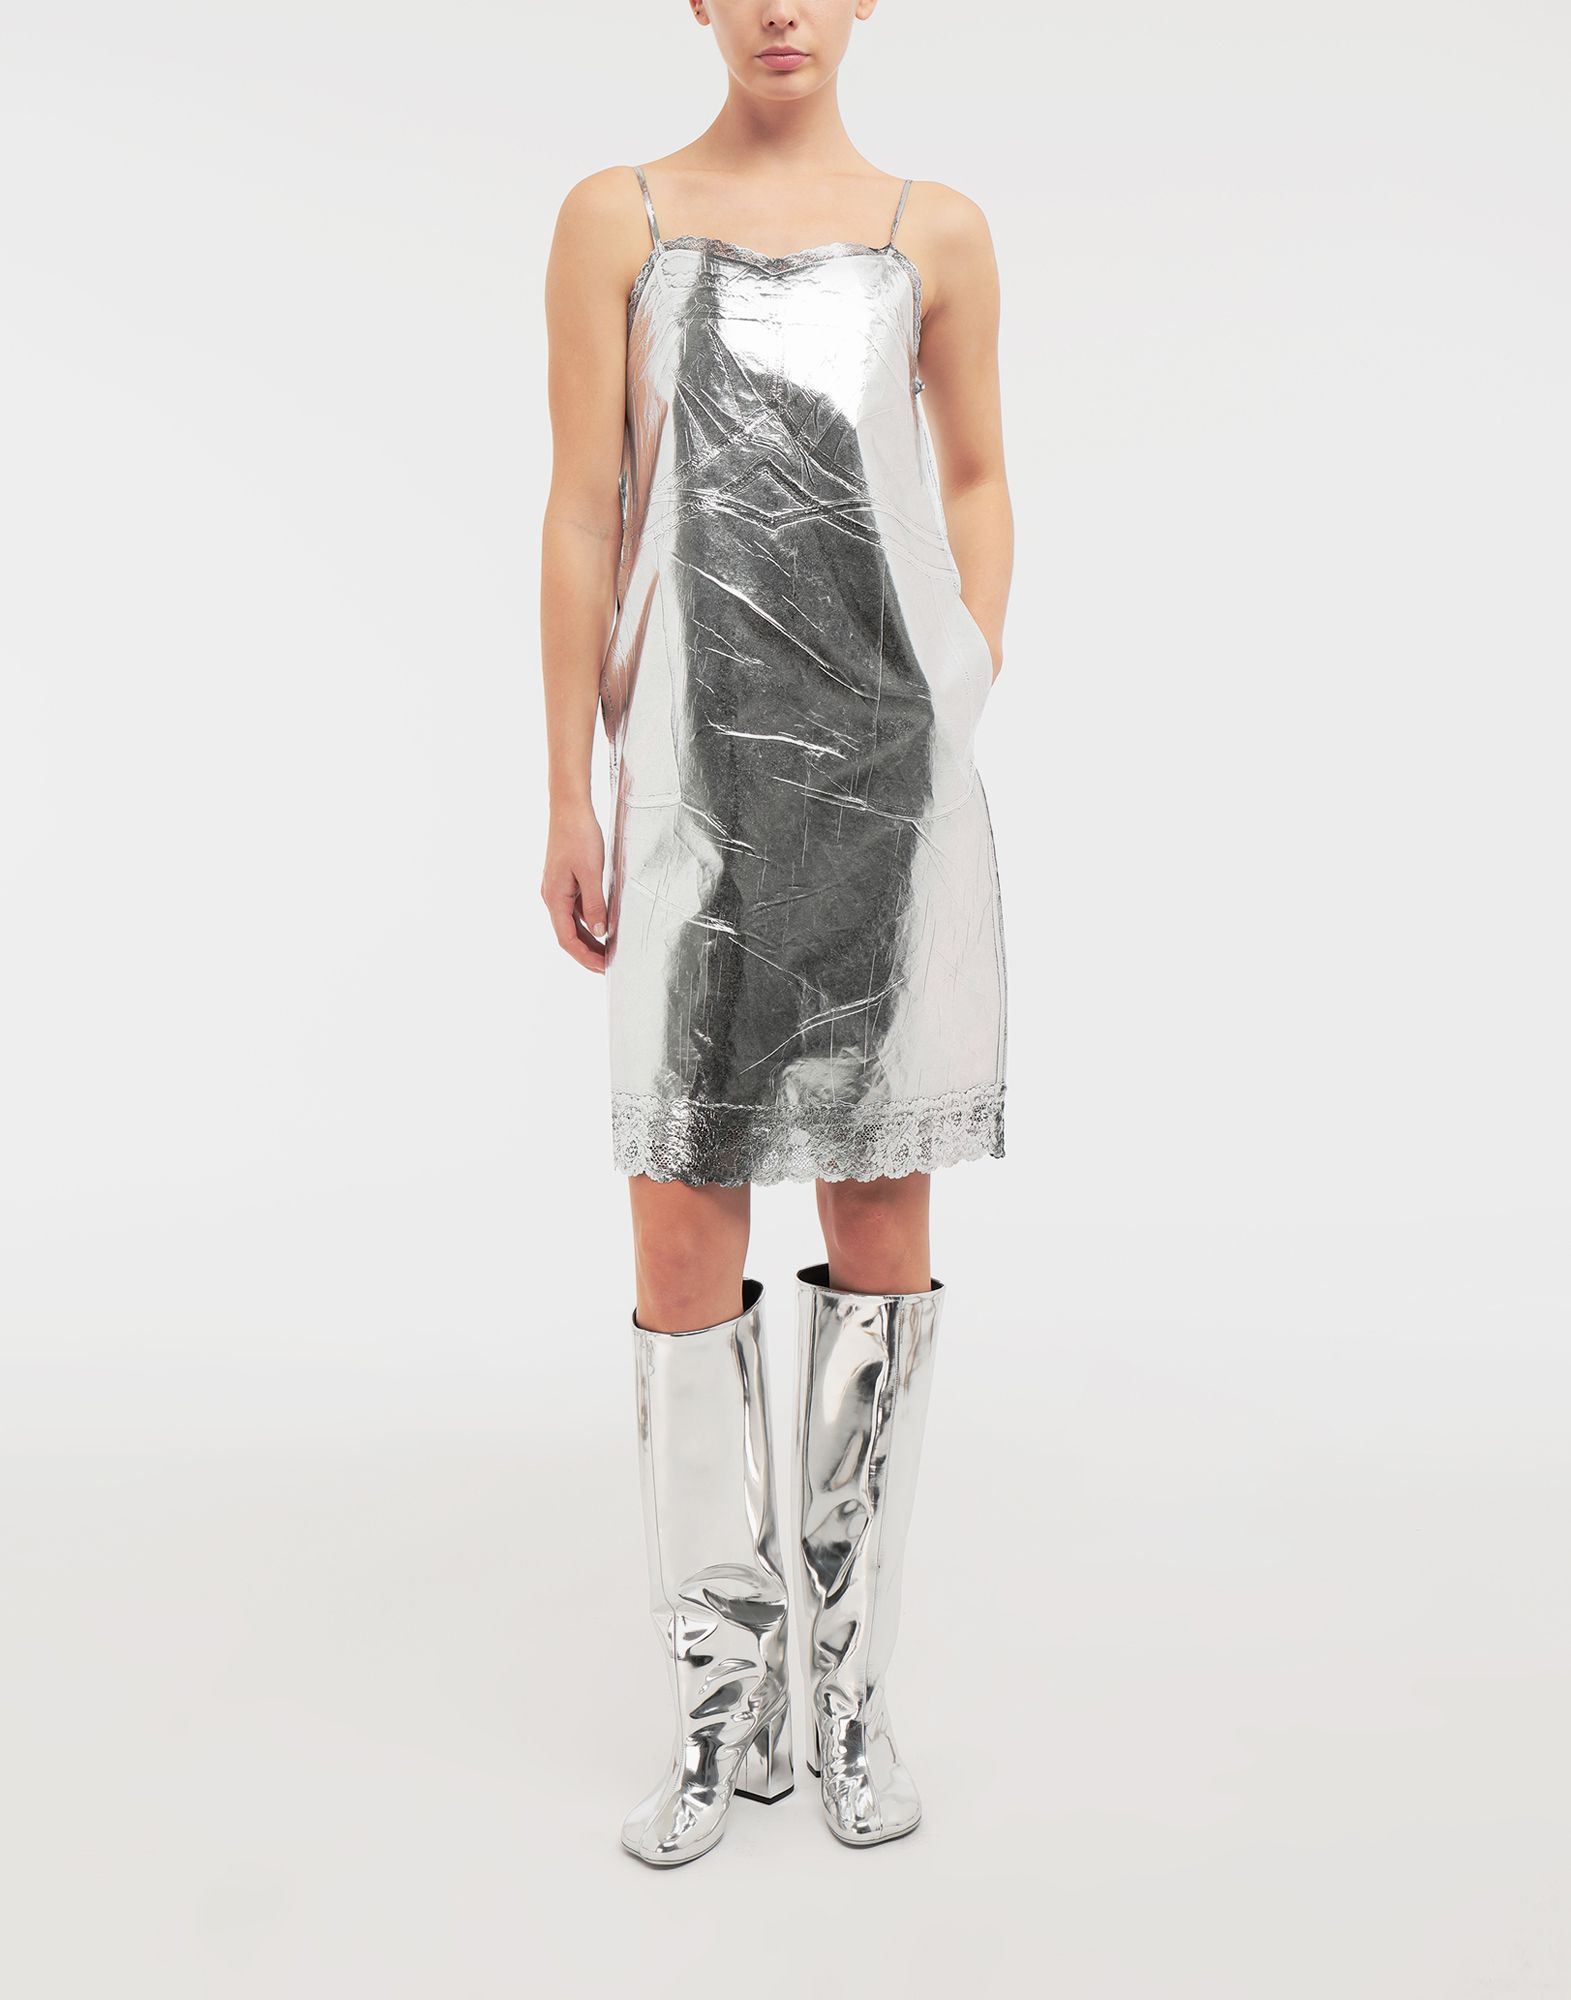 MM6 MAISON MARGIELA Silver midi strapped dress Short dress Woman r